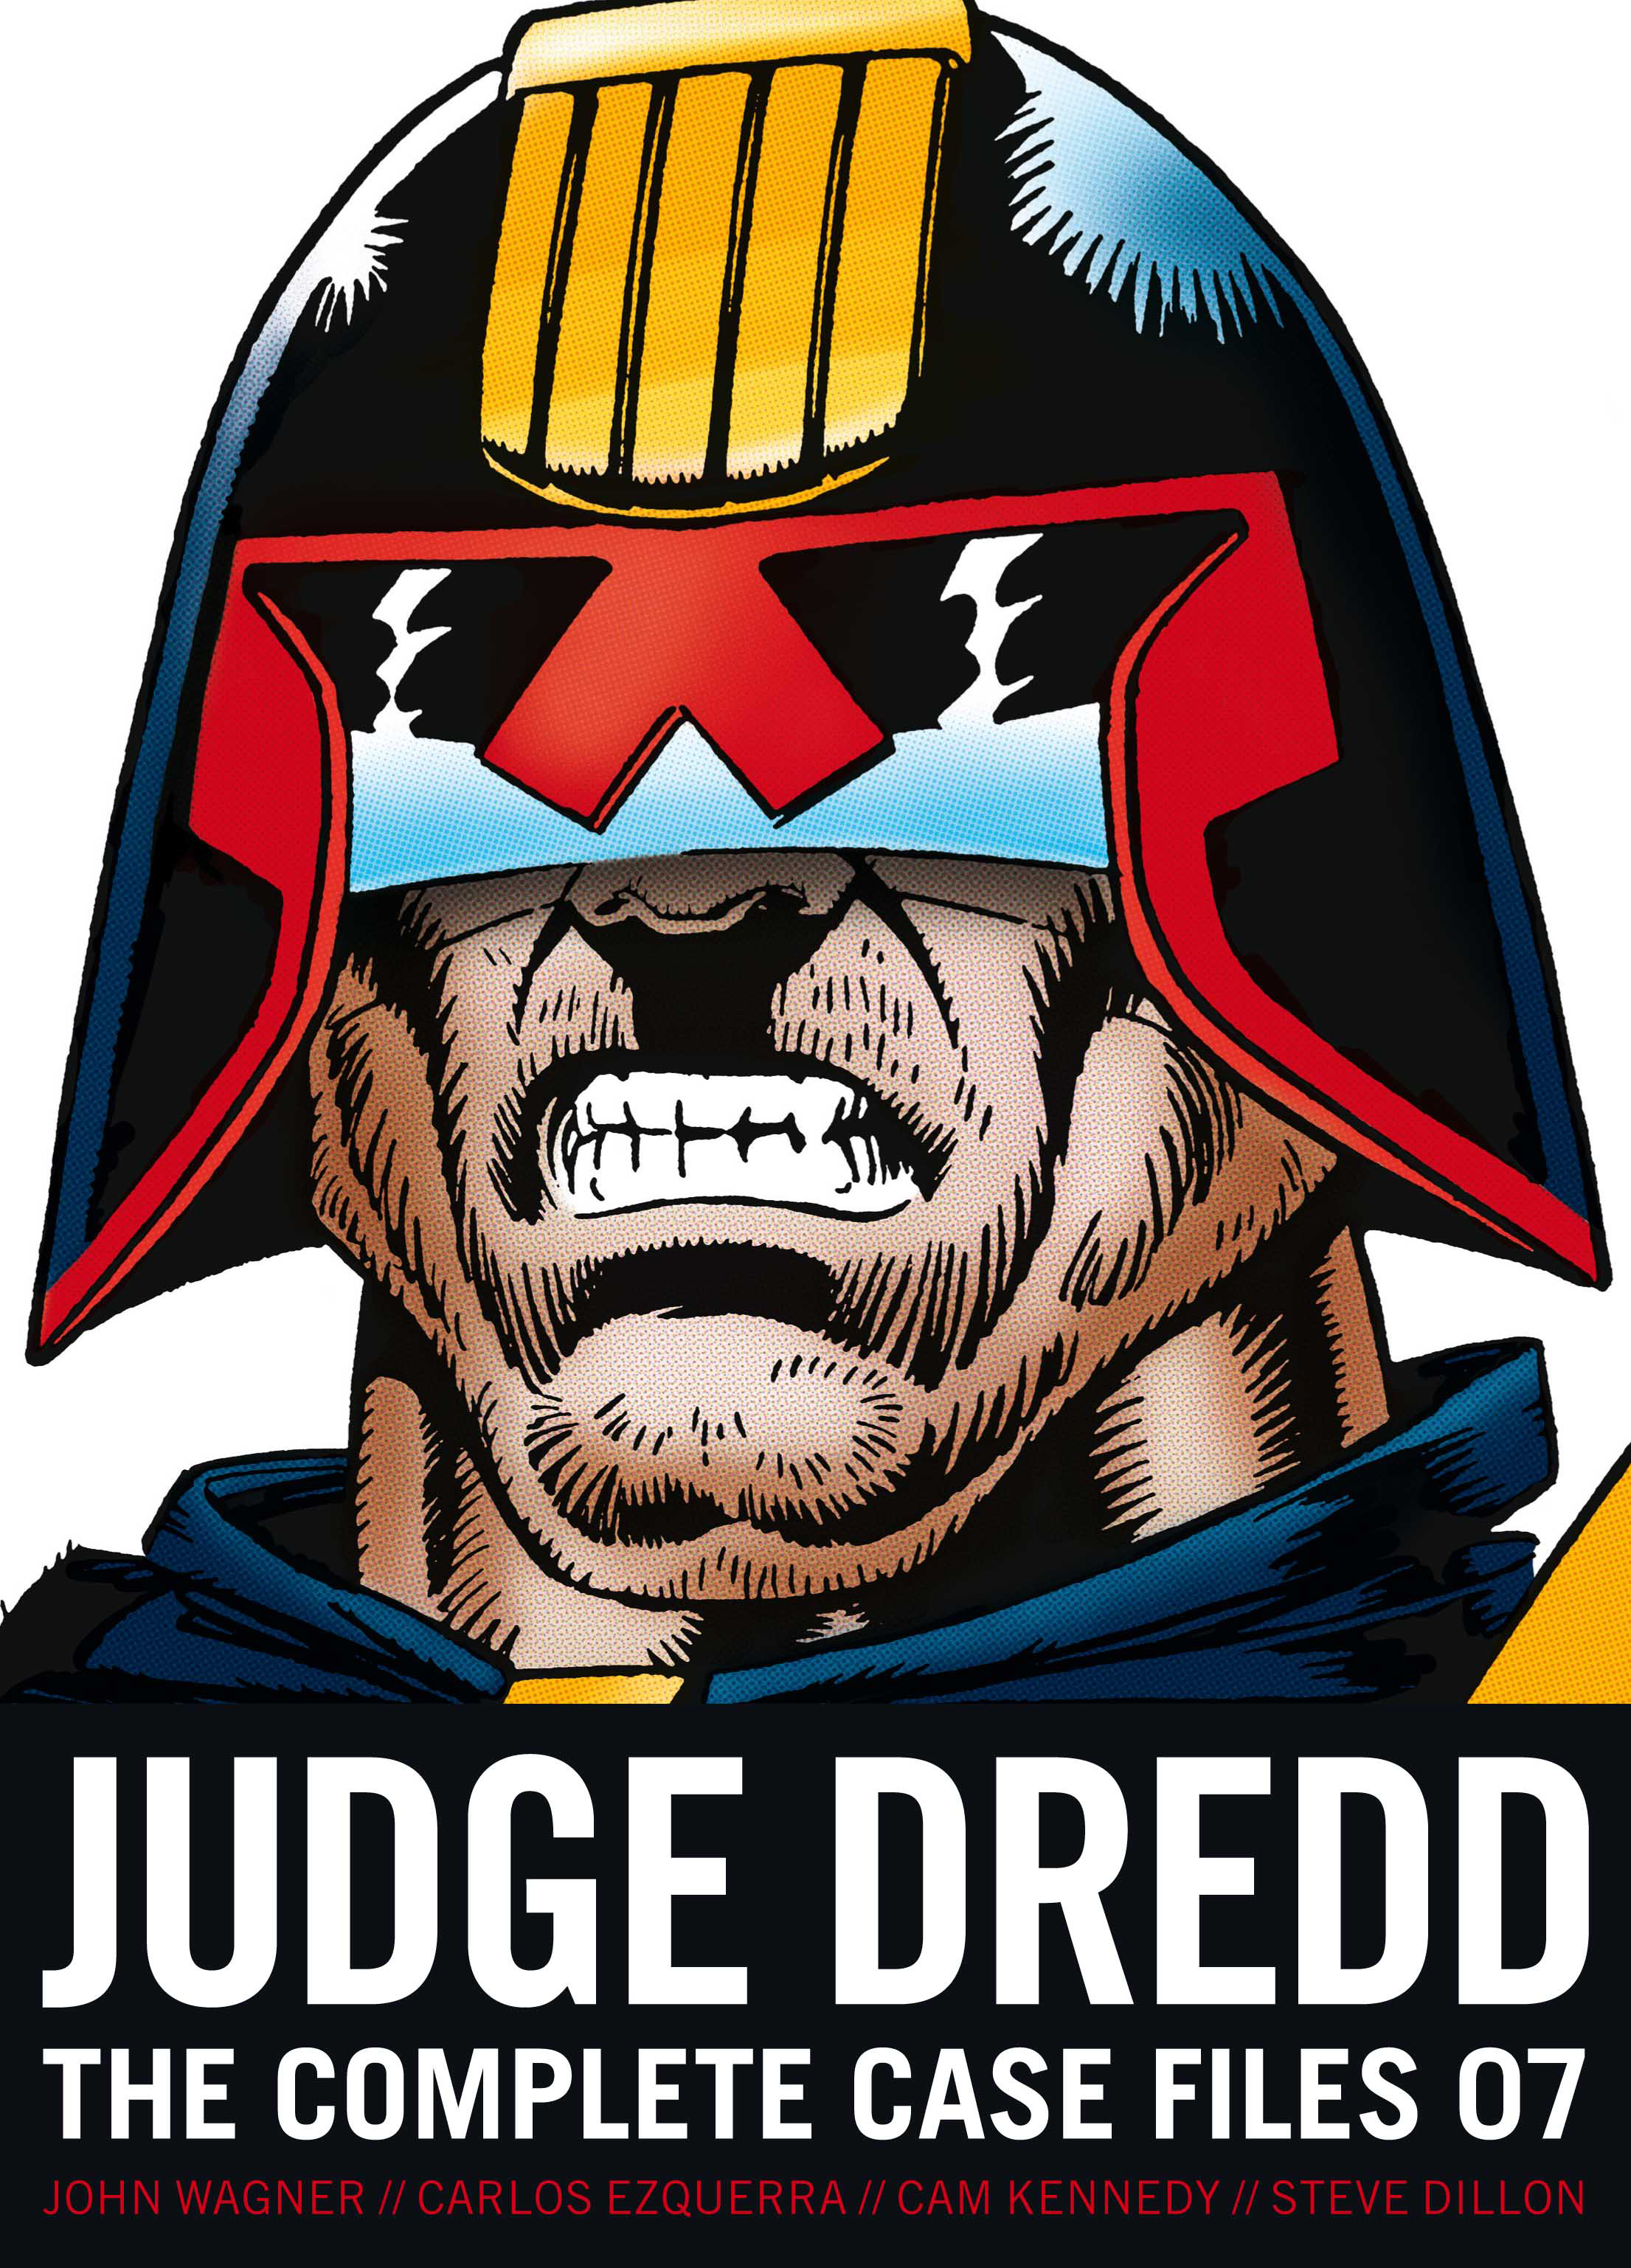 Judge dredd the complete case files 07 9781781082171 hr